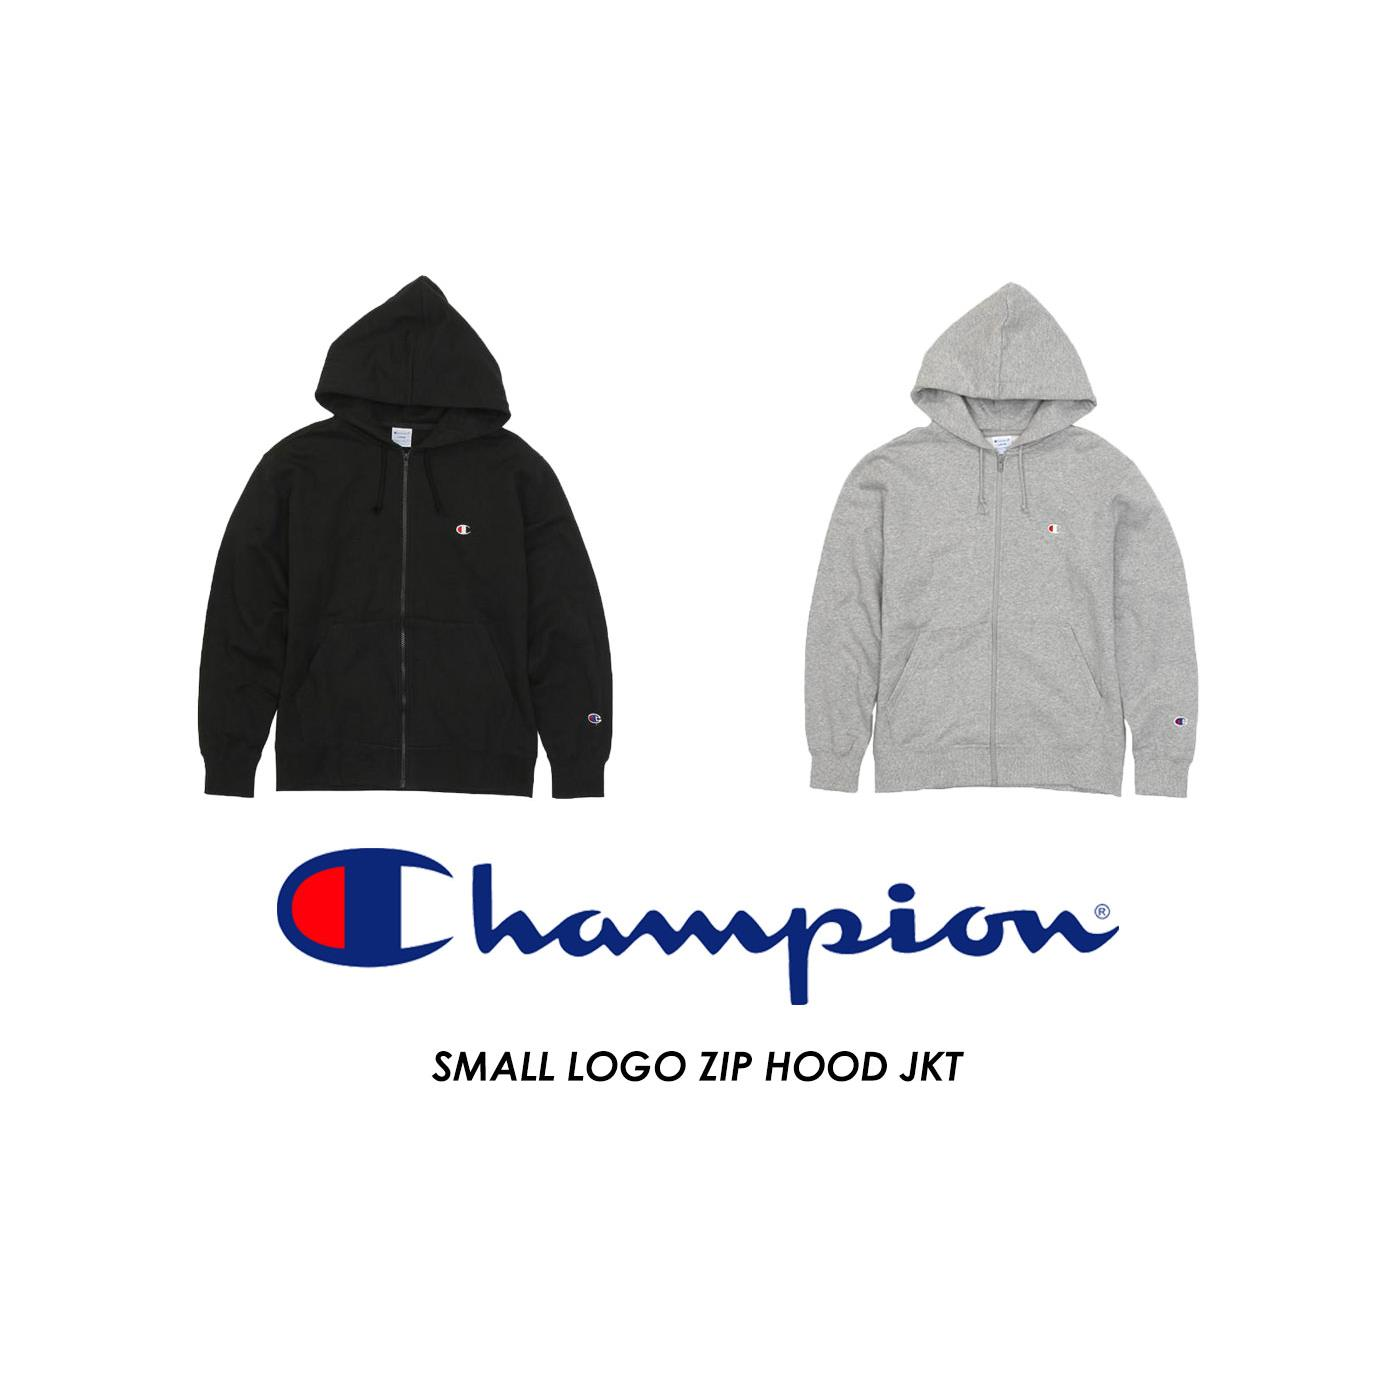 【CHAMPION】SMALL LOGO ZIP HOOD JKT 小LOGO連帽外套 二色